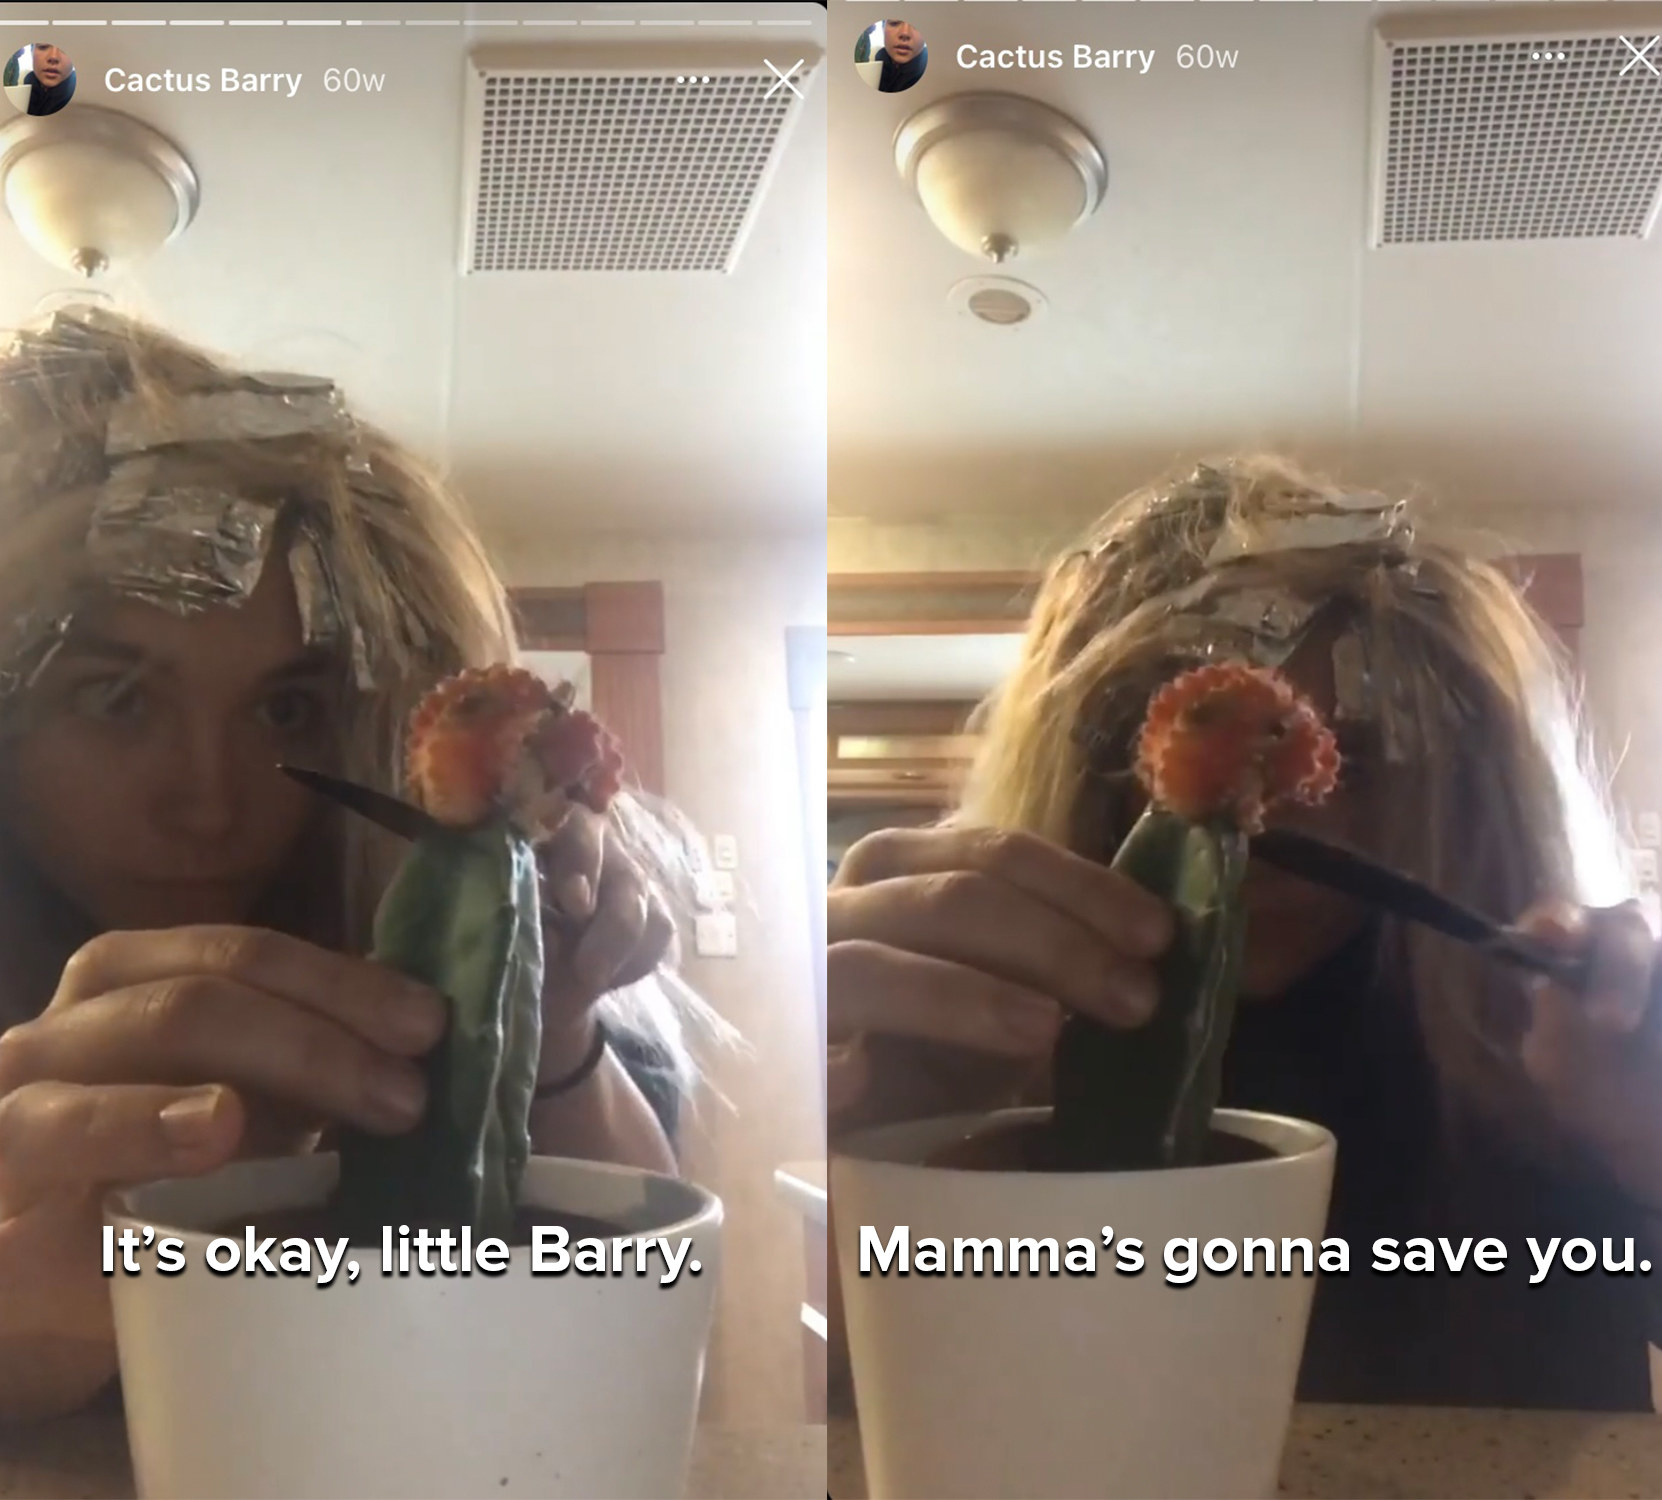 """Flo sings, """"It's okay, little Barry, Mamma's gonna save you"""" as she trims off the dead part of a cactus"""